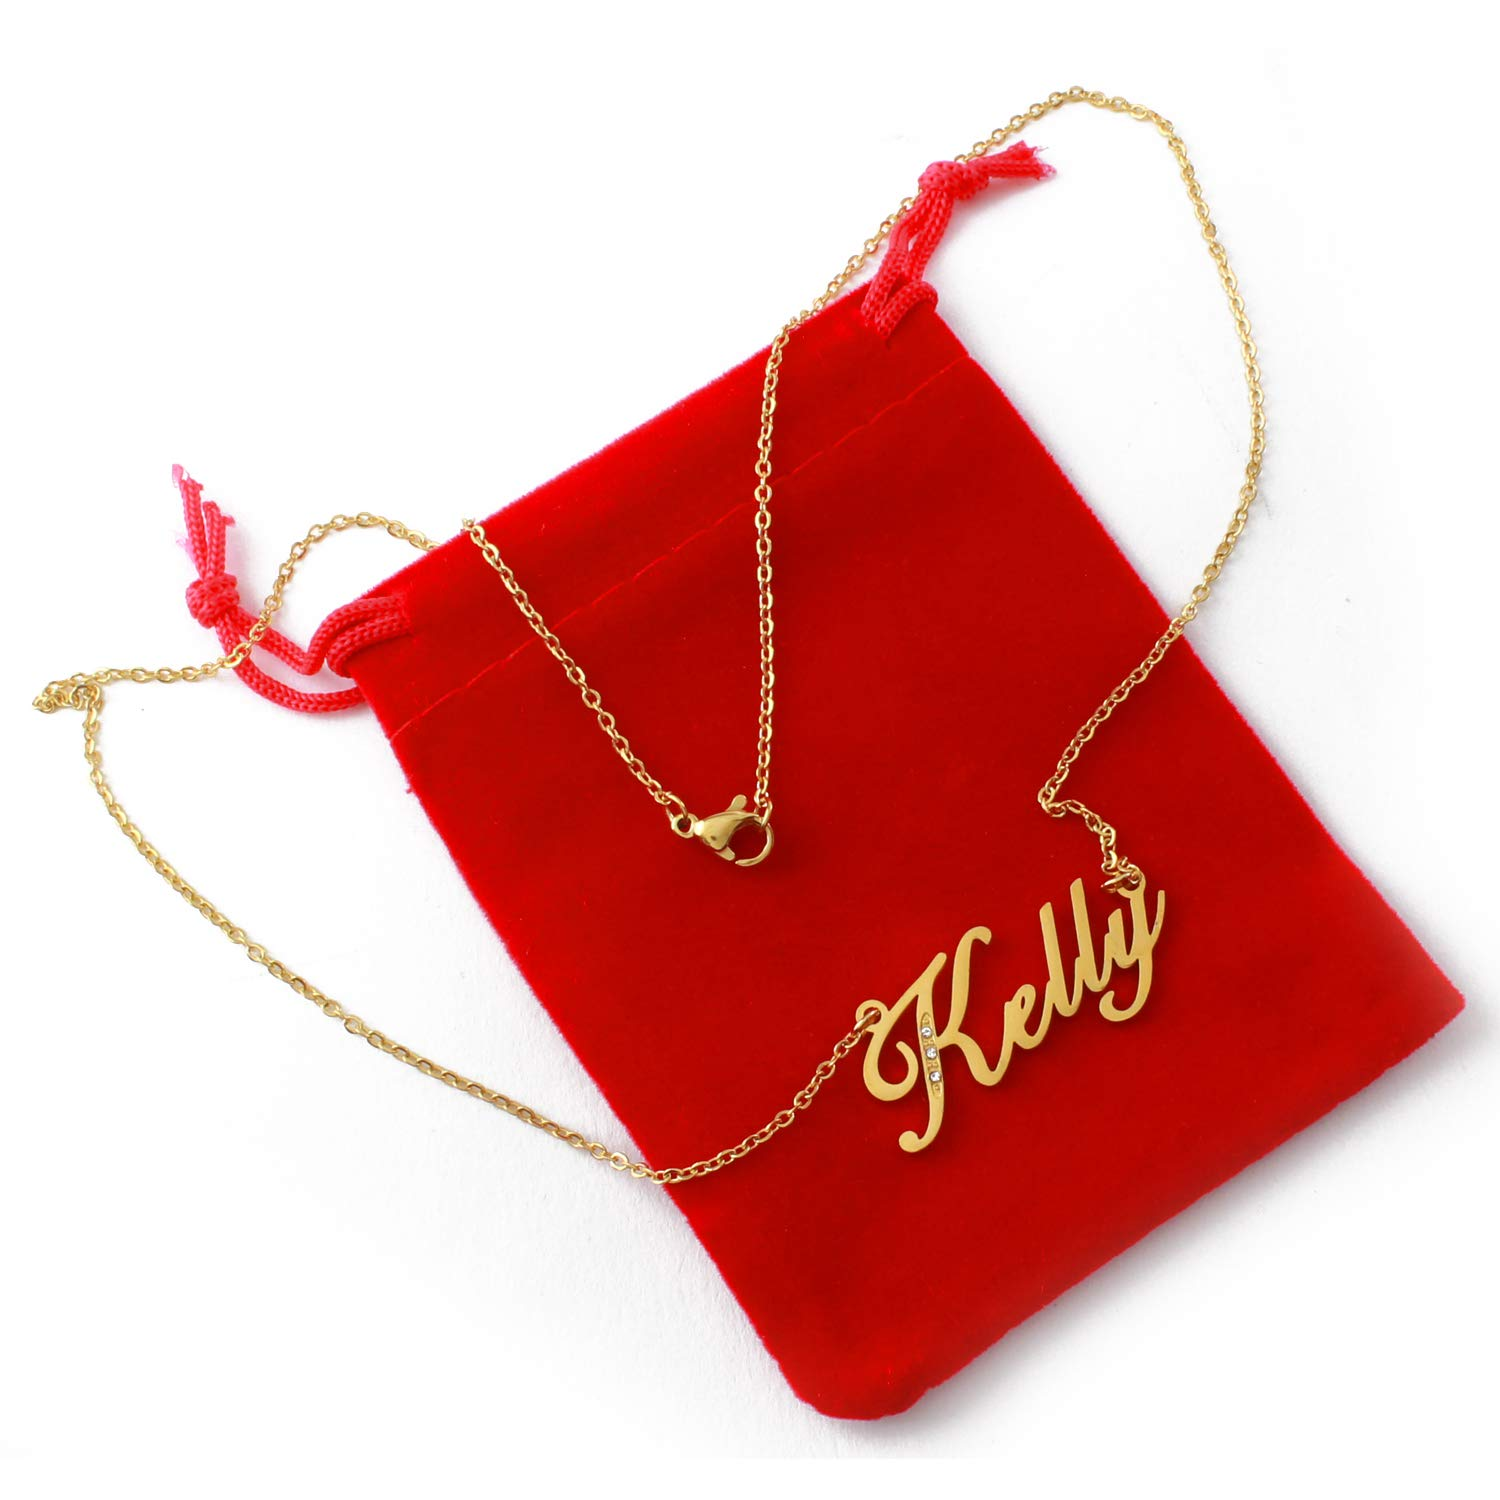 Gold Tone Incl Zacria Italic Name Necklace Kelly Crystals